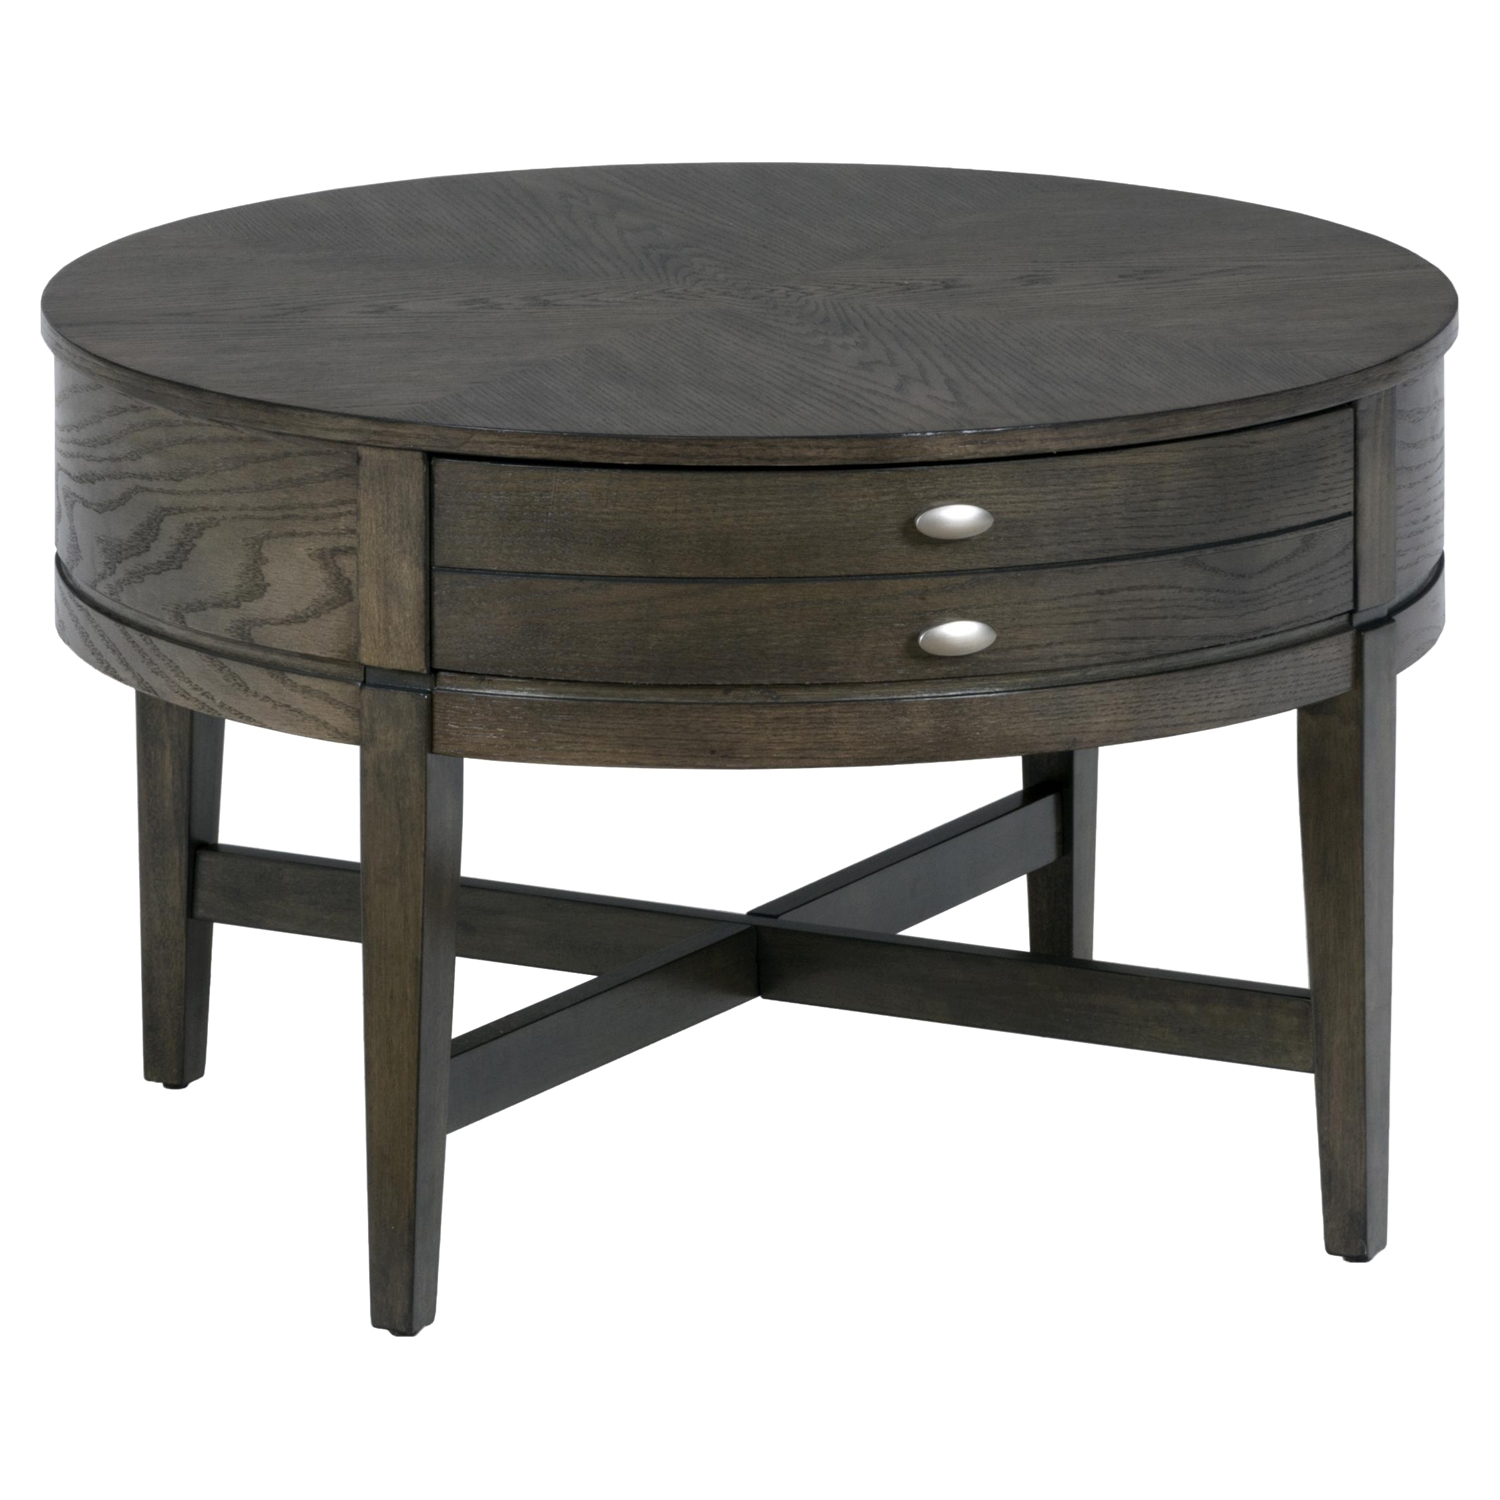 "Antique Gray 30"" Round Cocktail Table - JOFR-729-2"